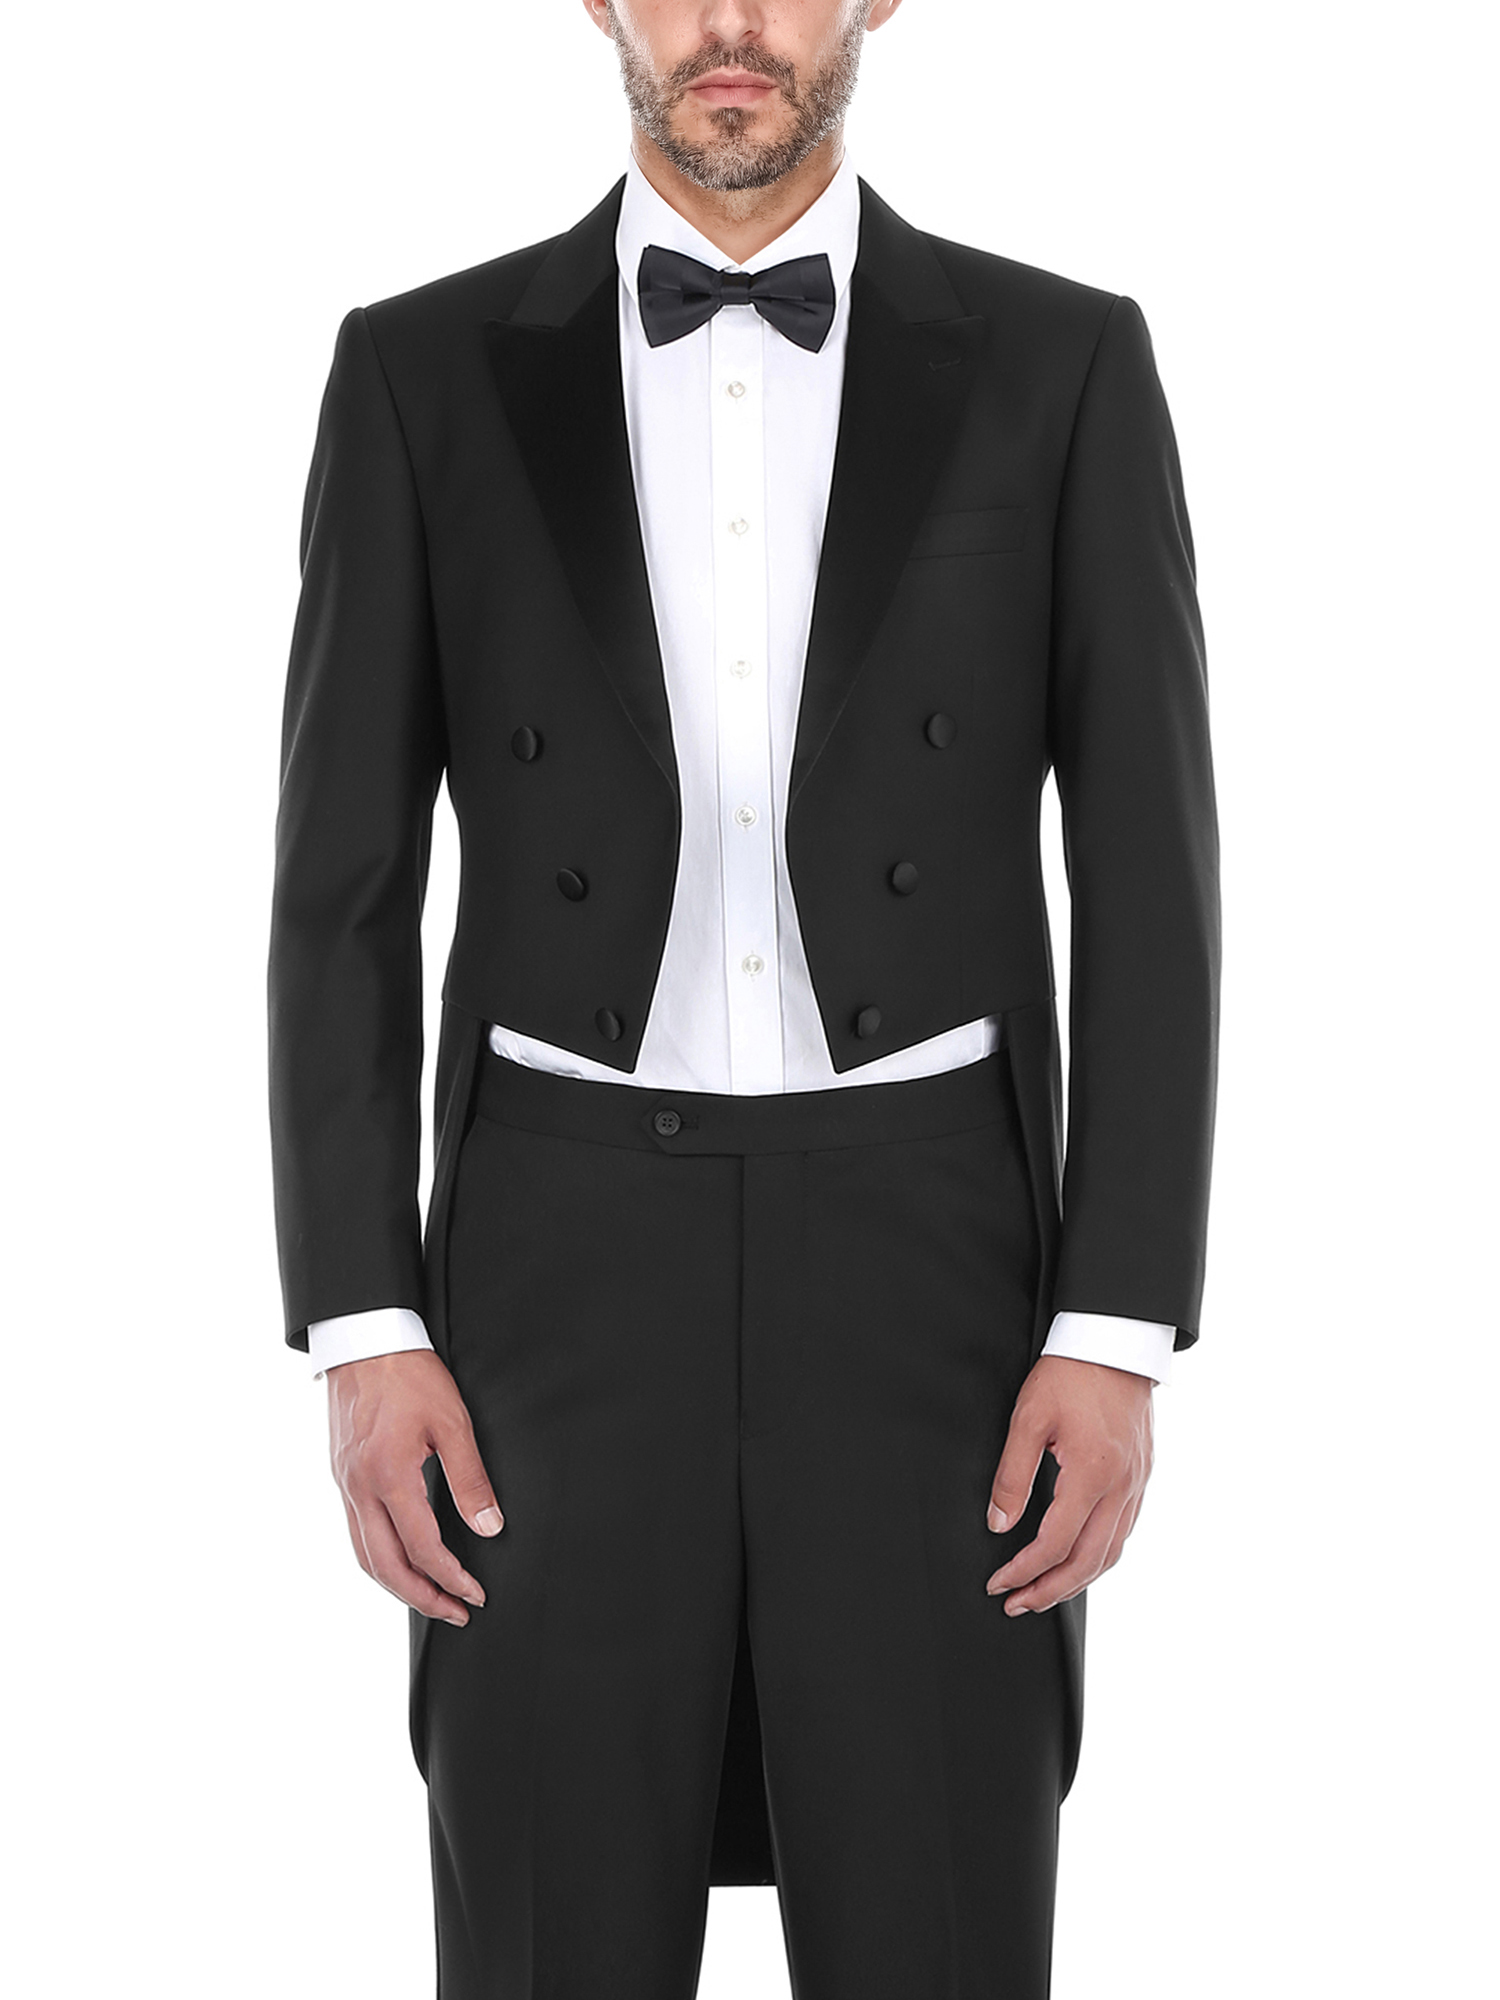 Men's Black Classic Fit Peak Lapel Full Dress Two Piece Tuxedo With Tails